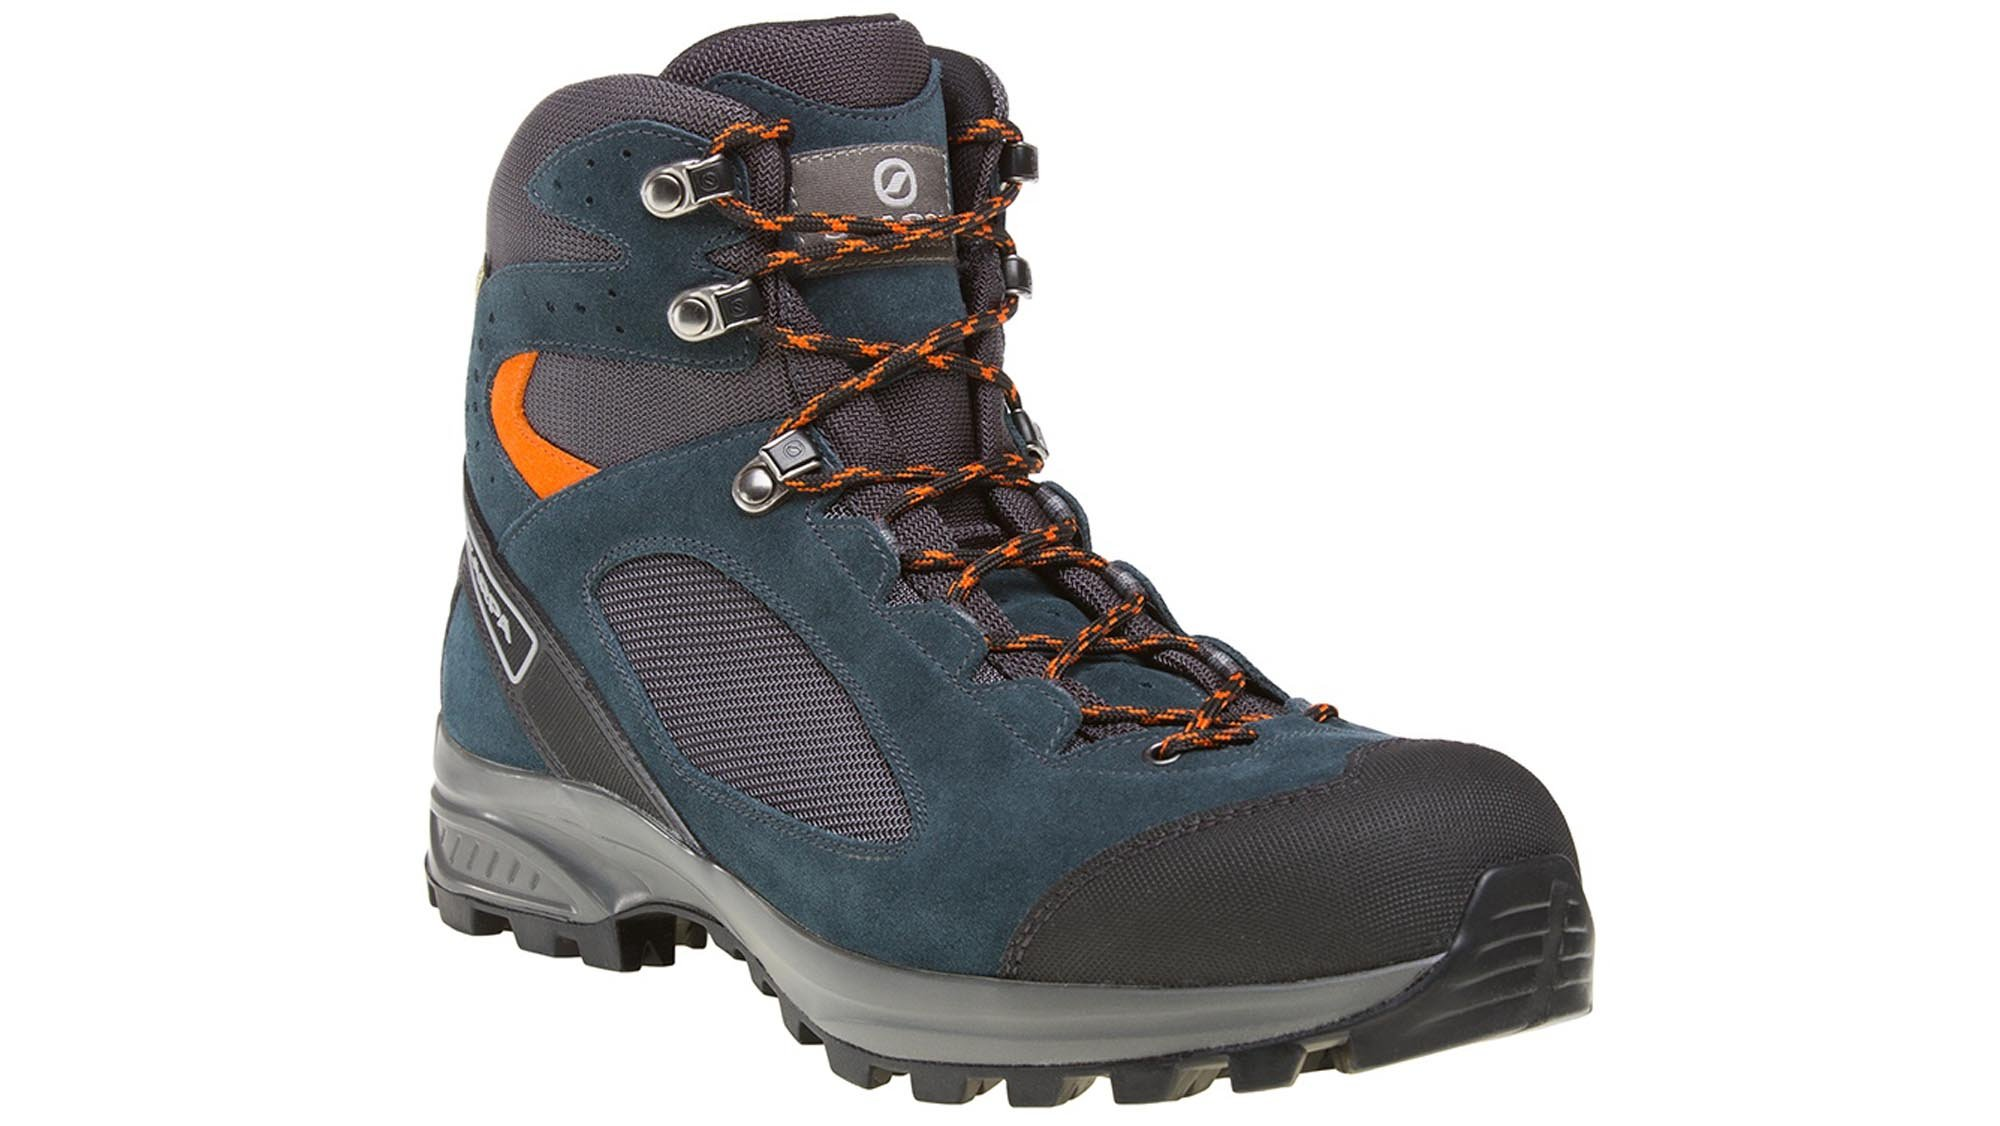 Best hiking boots 2019  Walking boots for men and women from £38 ... 2e47a4b29